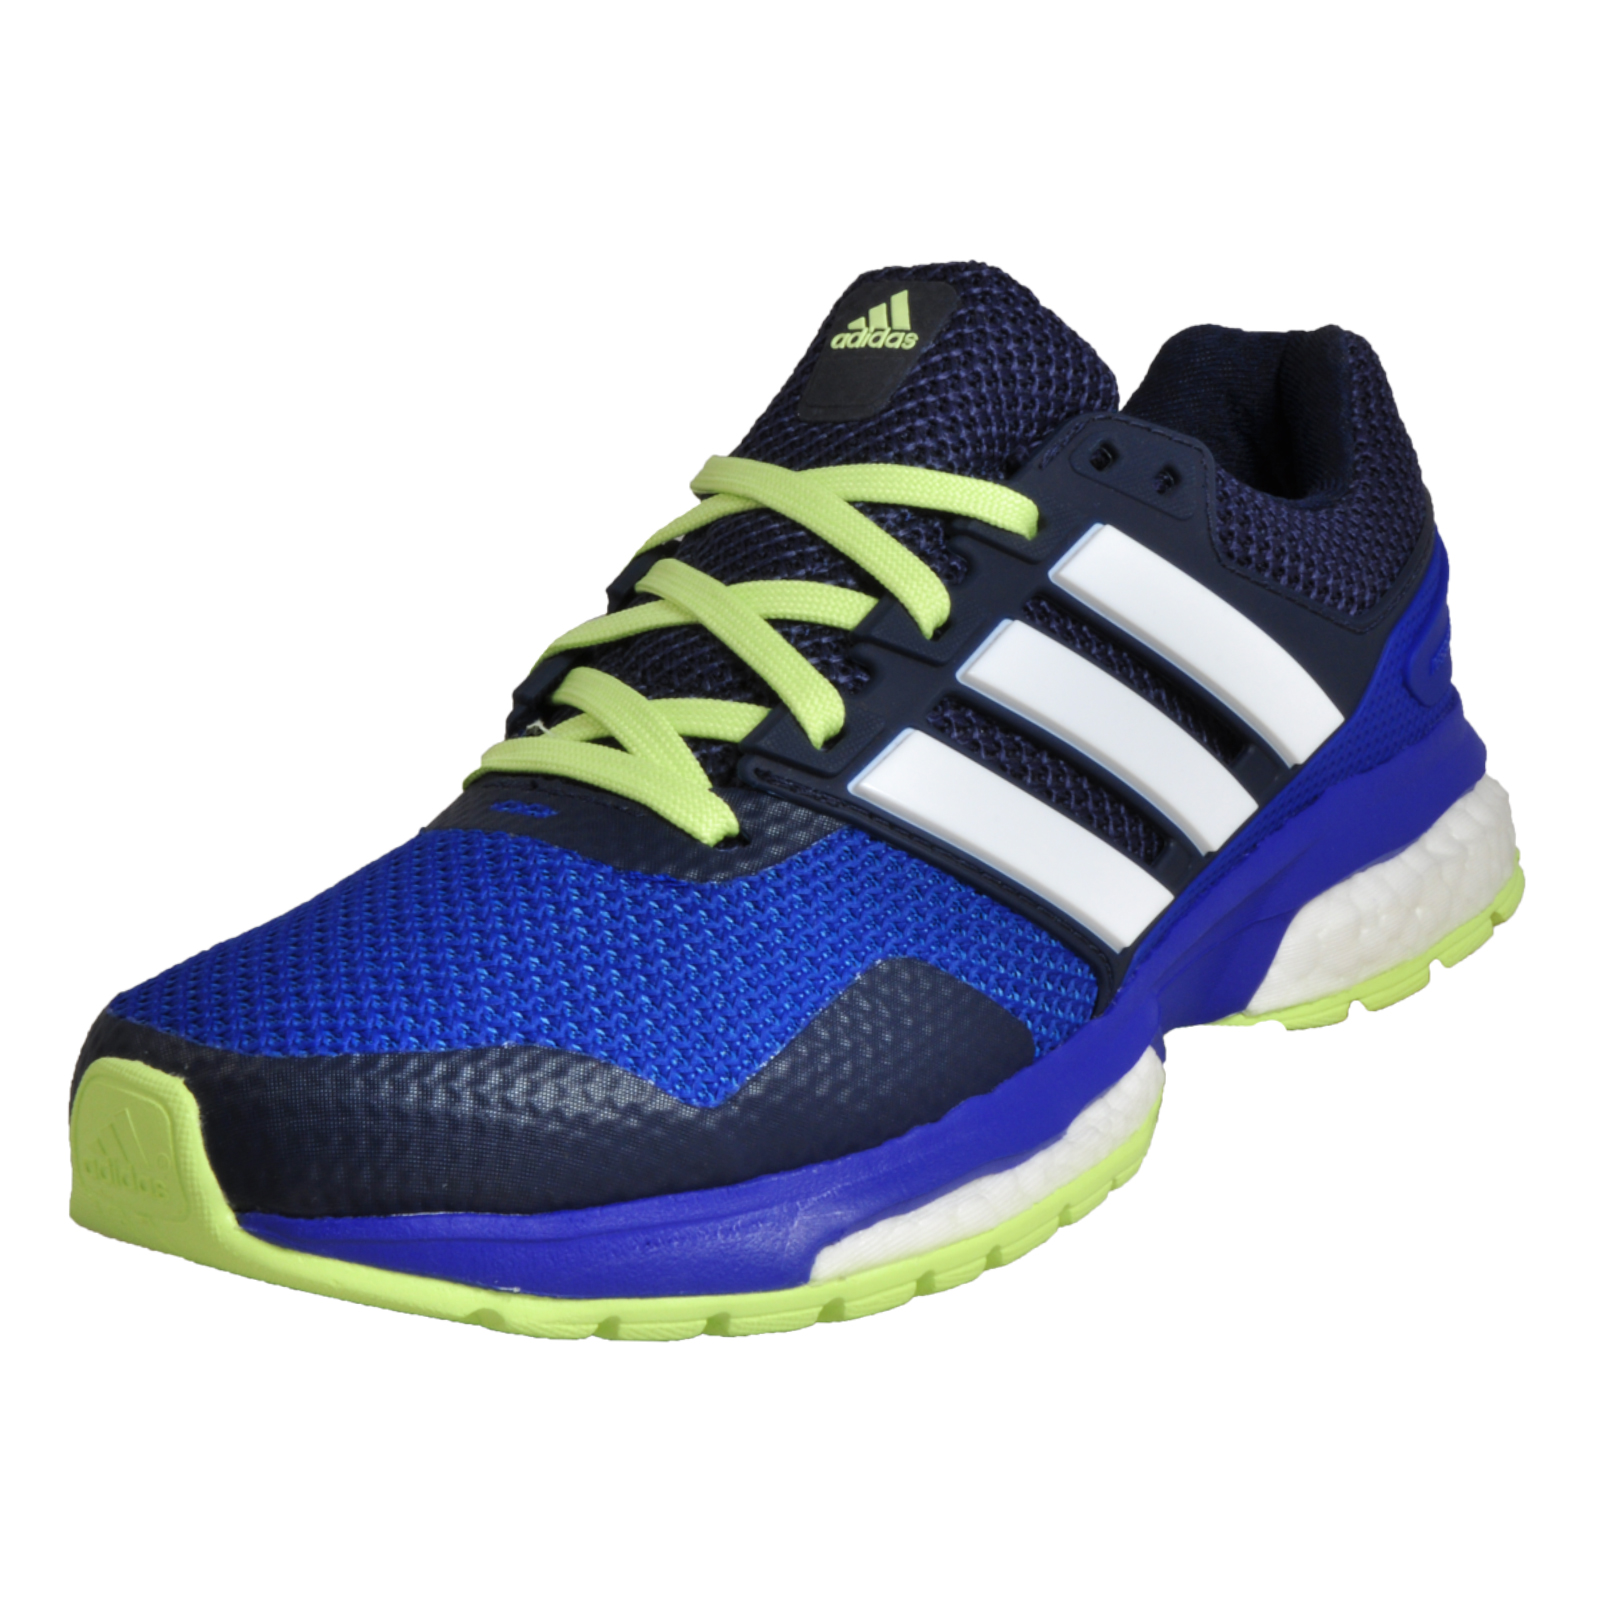 44c857960eae Details about Adidas Response Boost 2 Womens Ladies Running Shoes Fitness  Gym Trainers Blue